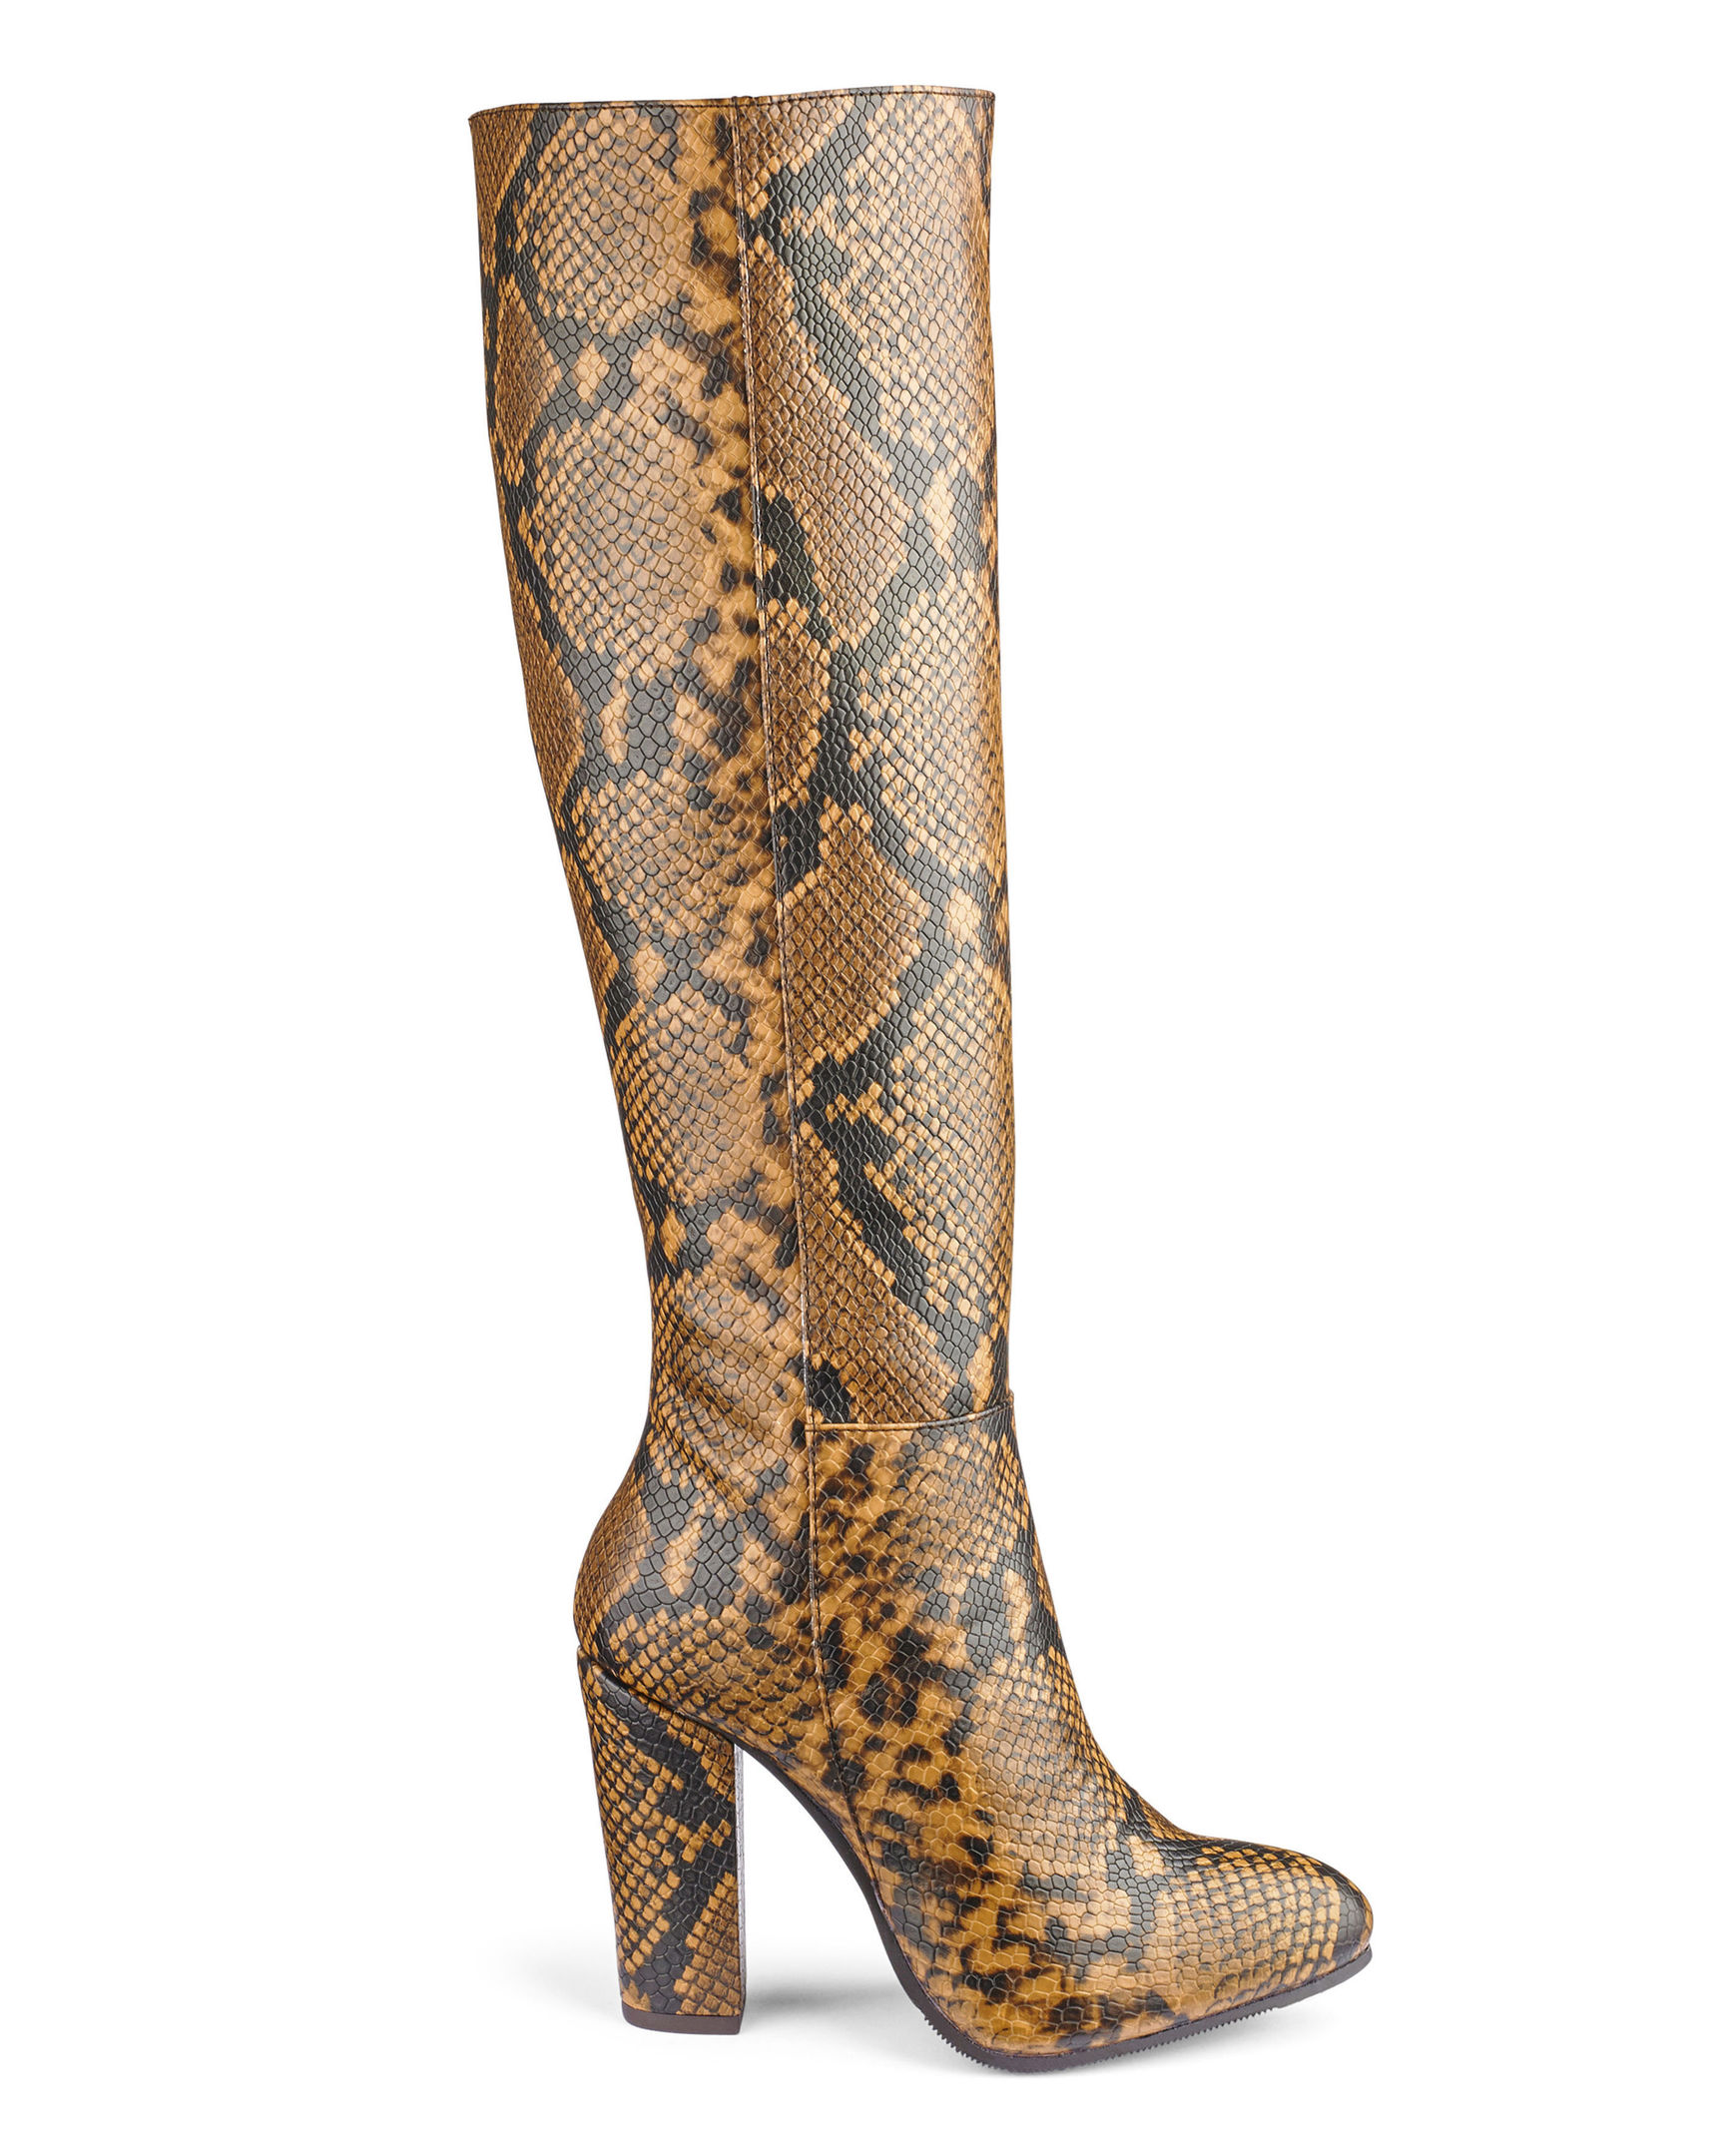 JD Williams Heavenly Soles Snake Side Zip Knee High Boots, available from jdwilliams.co.uk.